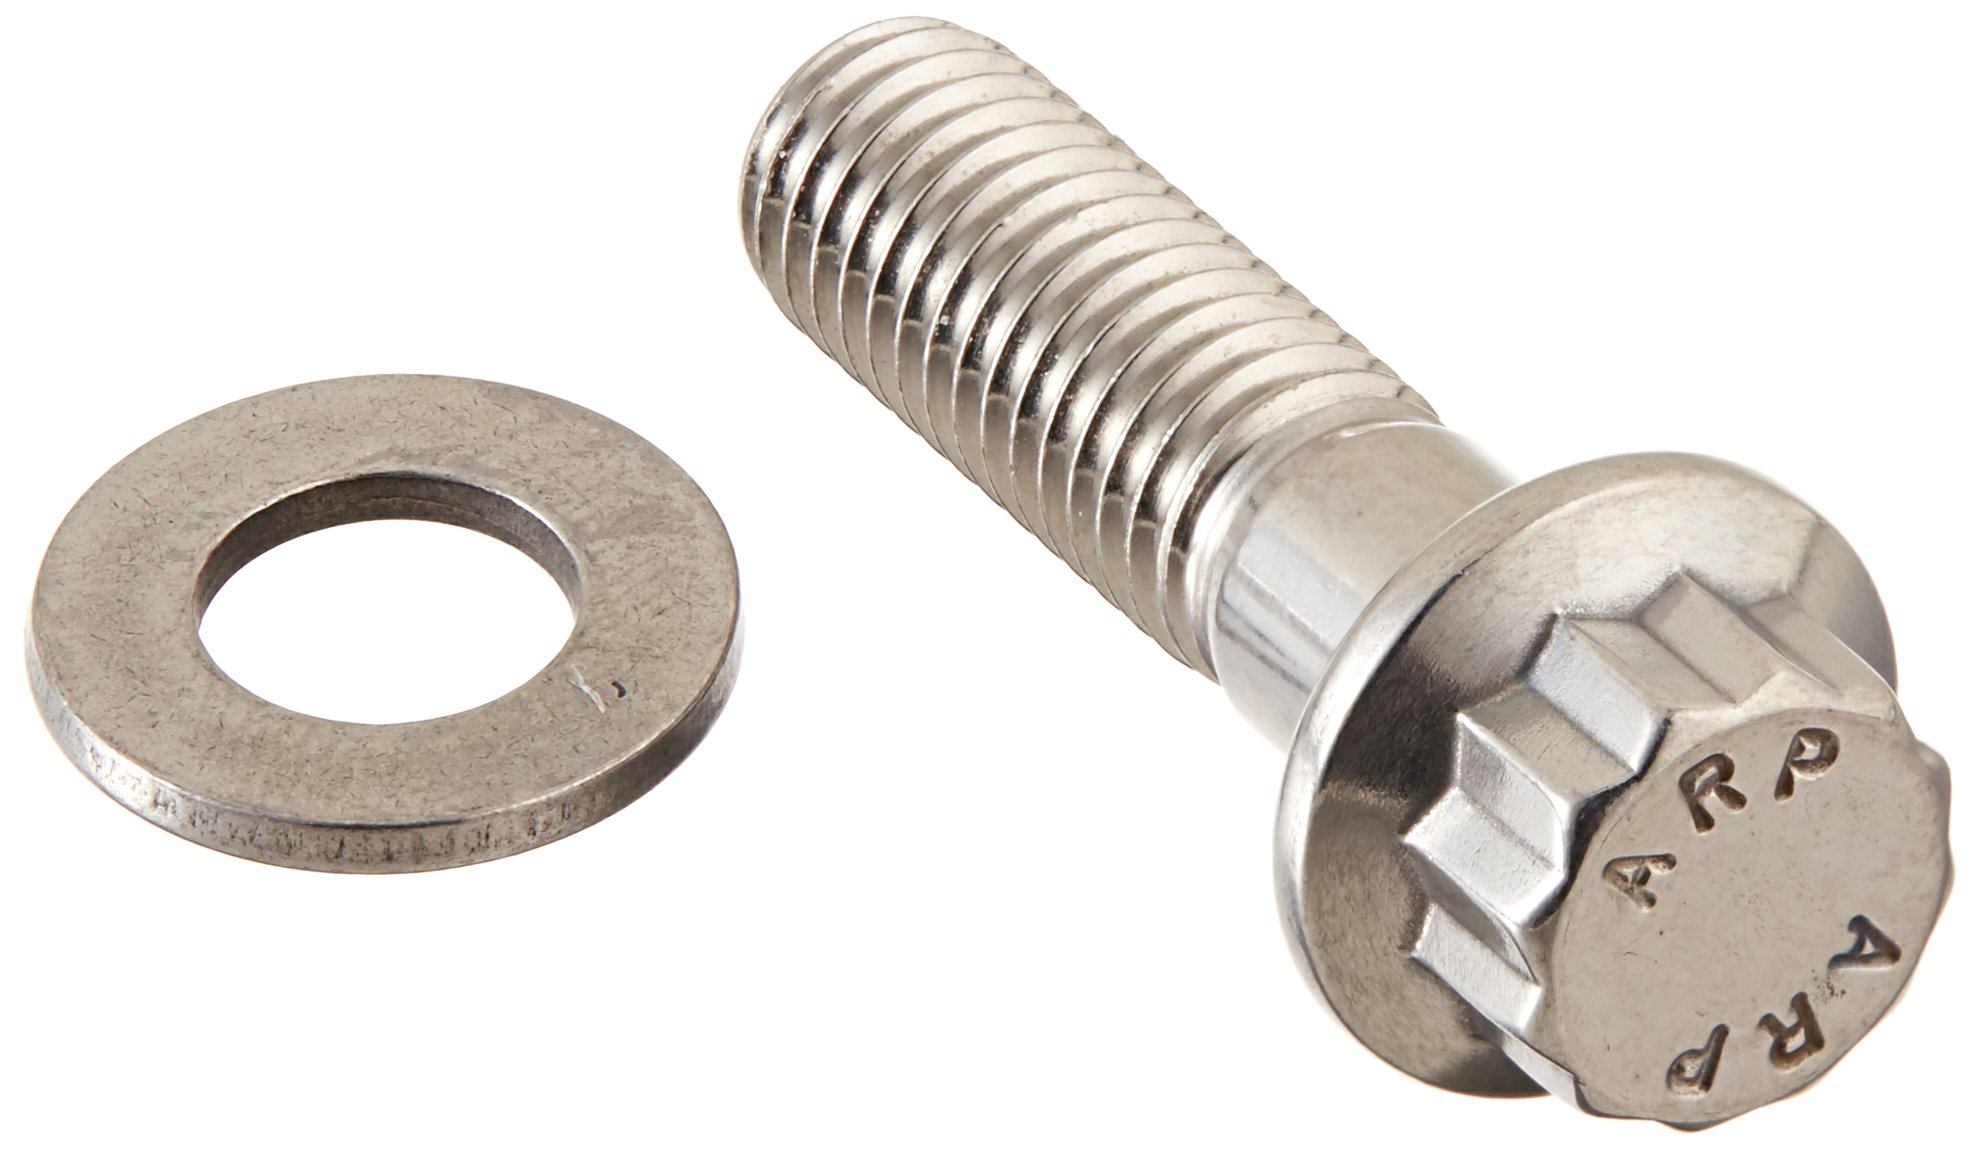 ARP 434-8002 12-Point Stainless Steel Valley Cover Bolt Kit for Chevy LS1/LS2 by ARP (Image #1)